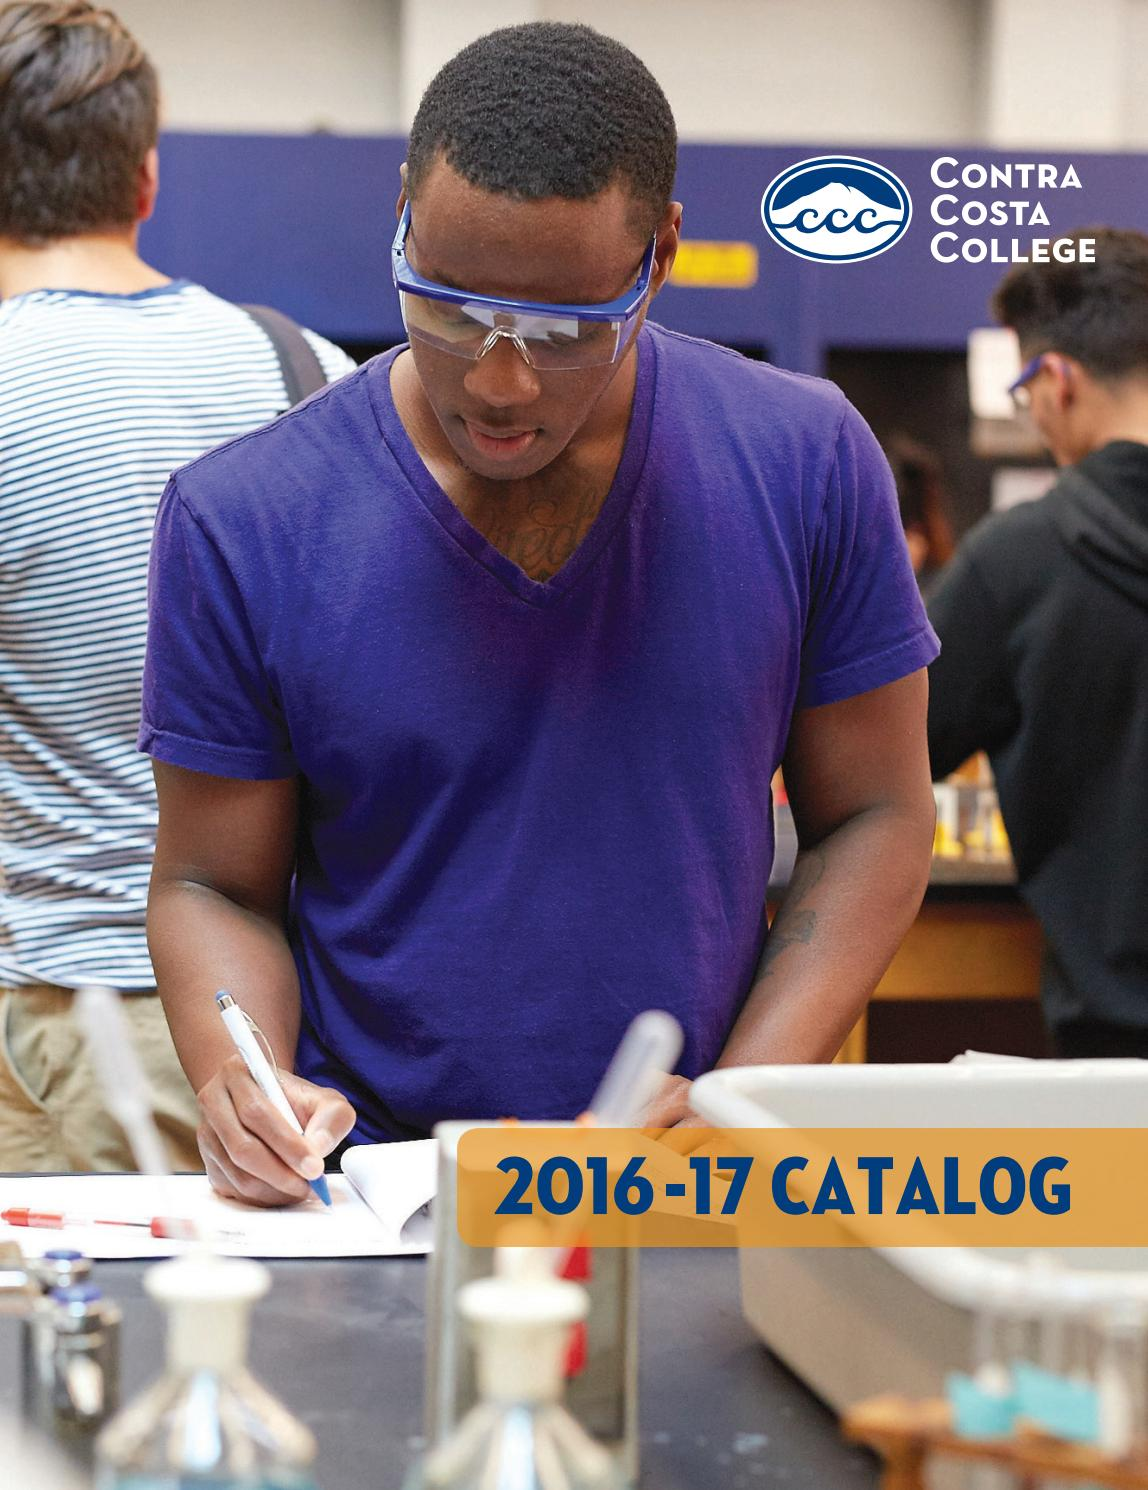 daf5232971b5 Contra Costa Catalog 2016 - 2017 by Contra Costa College - issuu